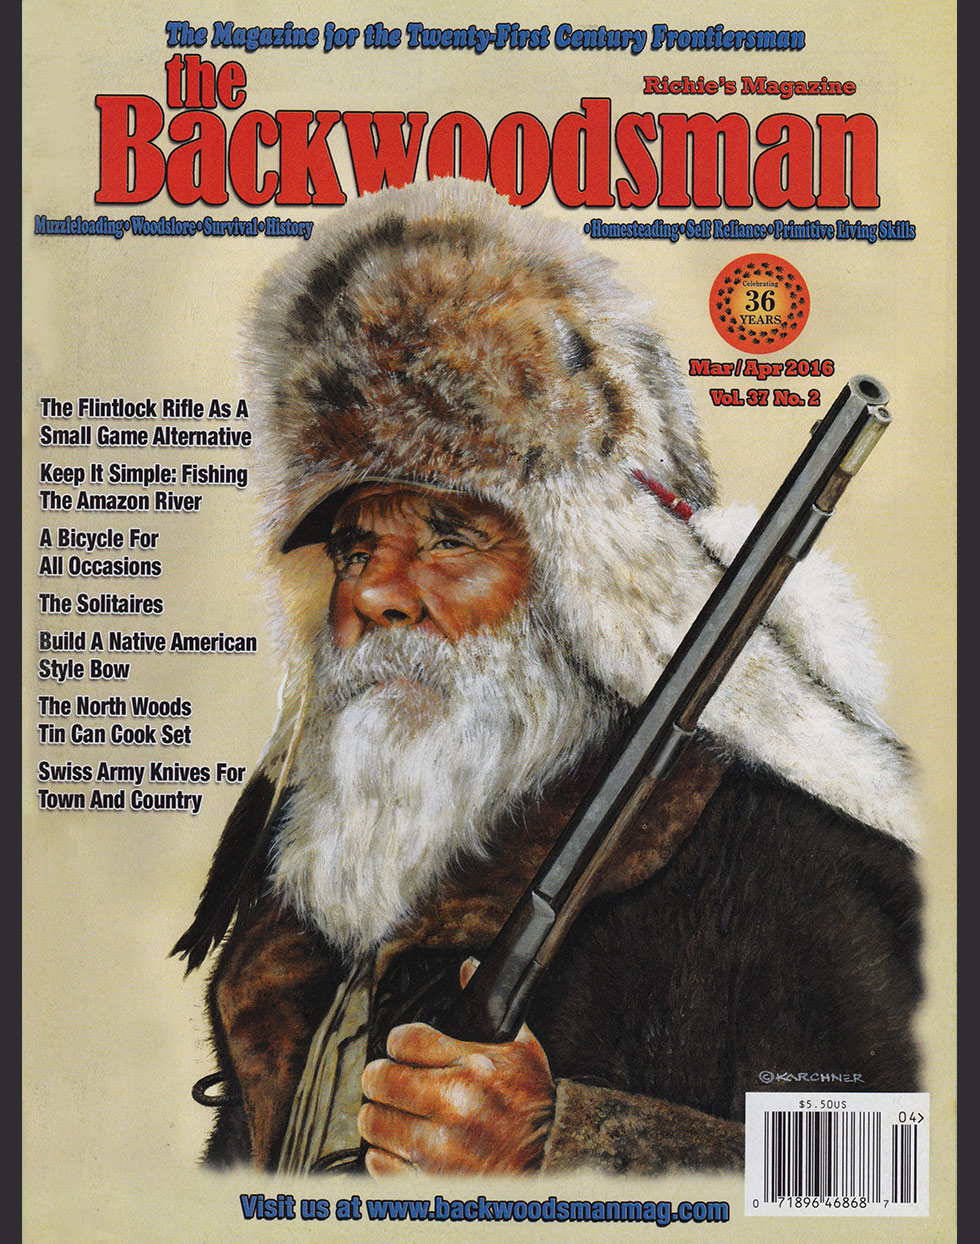 The Backwoodsman Magazine January/February 2008